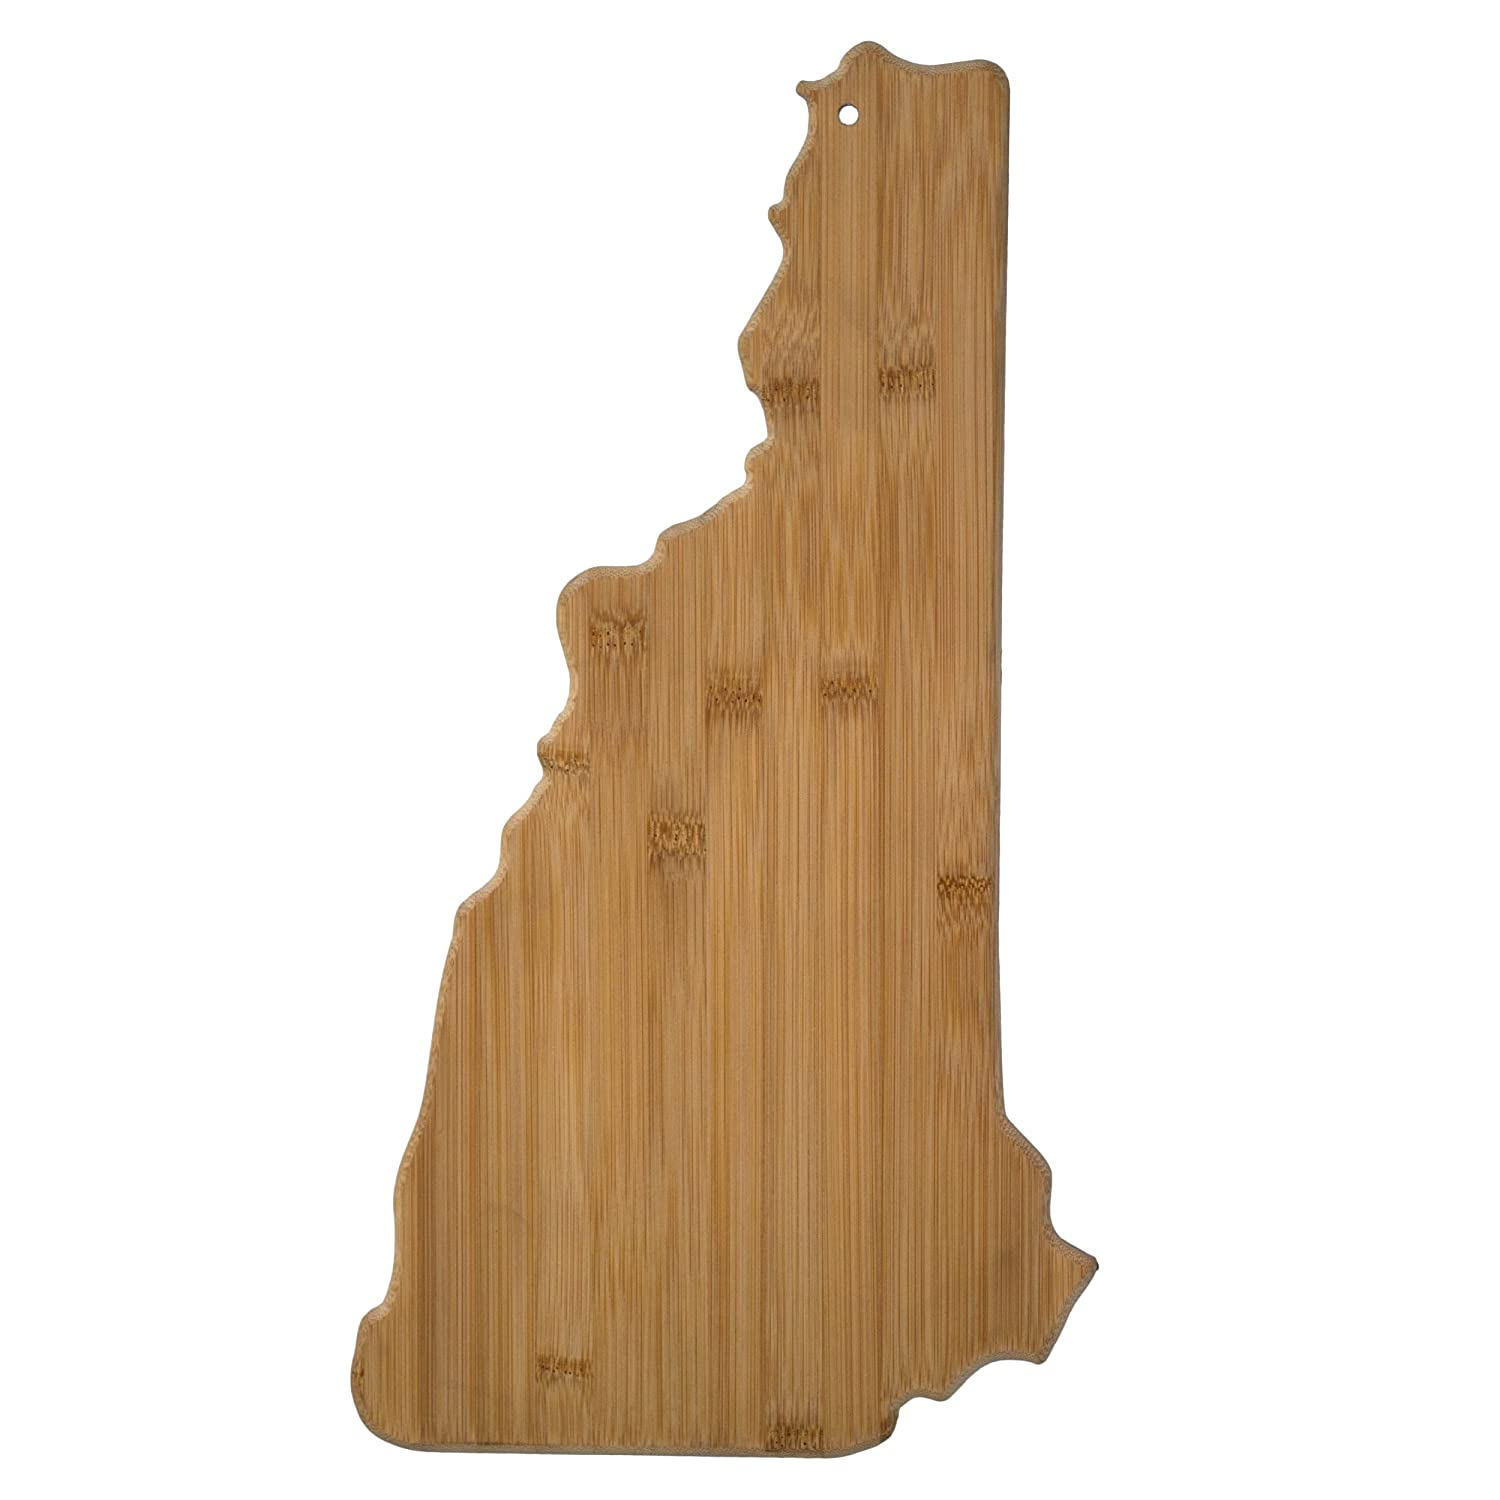 Totally Bamboo 20-7991NH New Hampshire State Shaped Bamboo Serving & Cutting Board